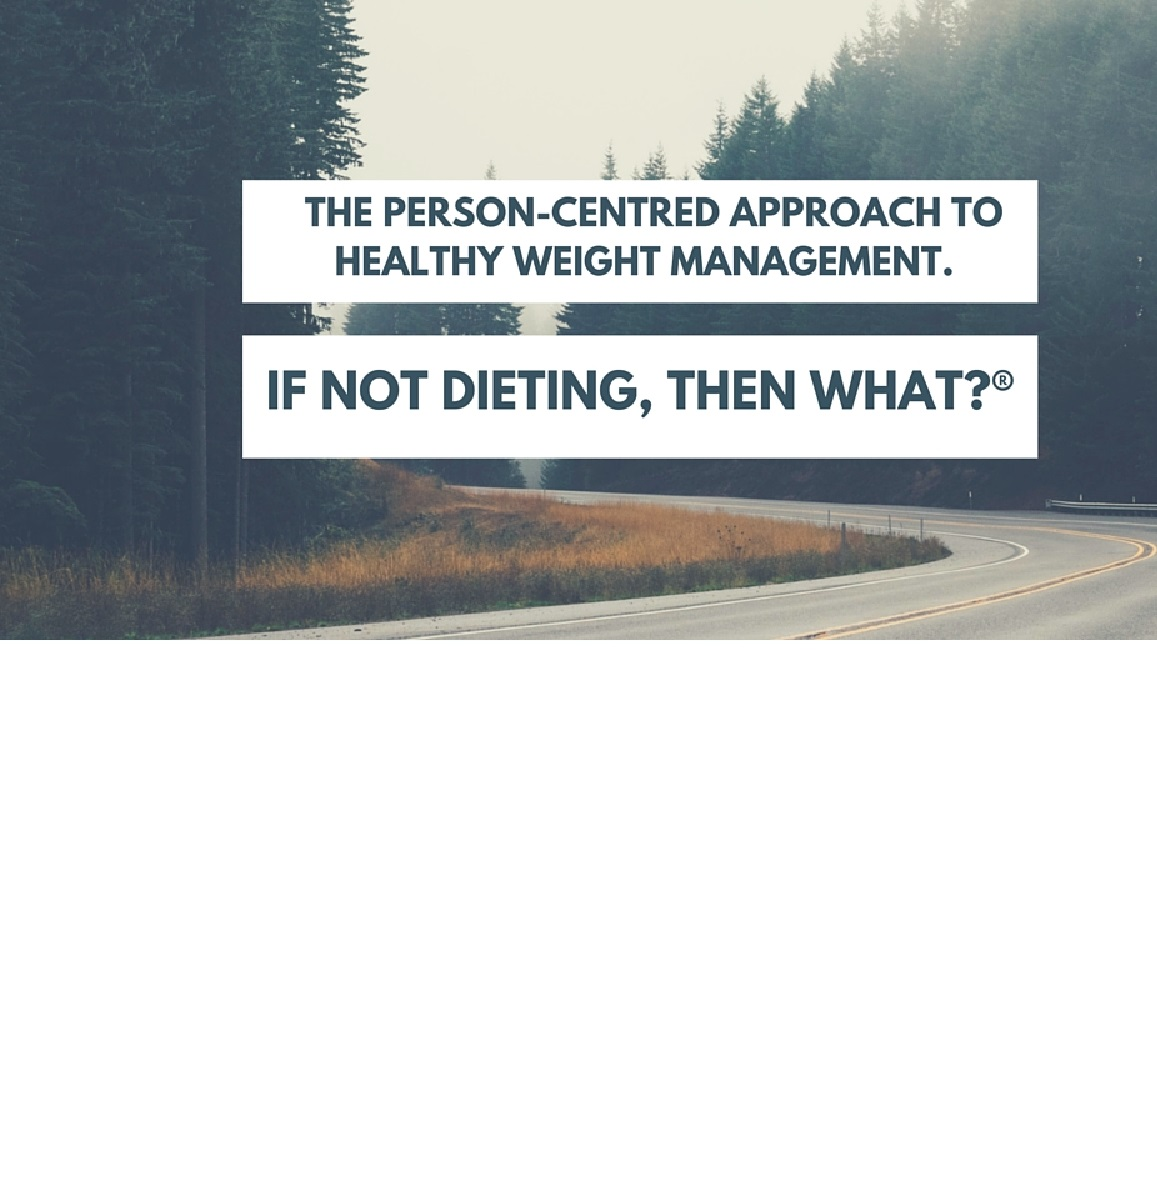 The Person-Centred Approach to Healthy Weight Management